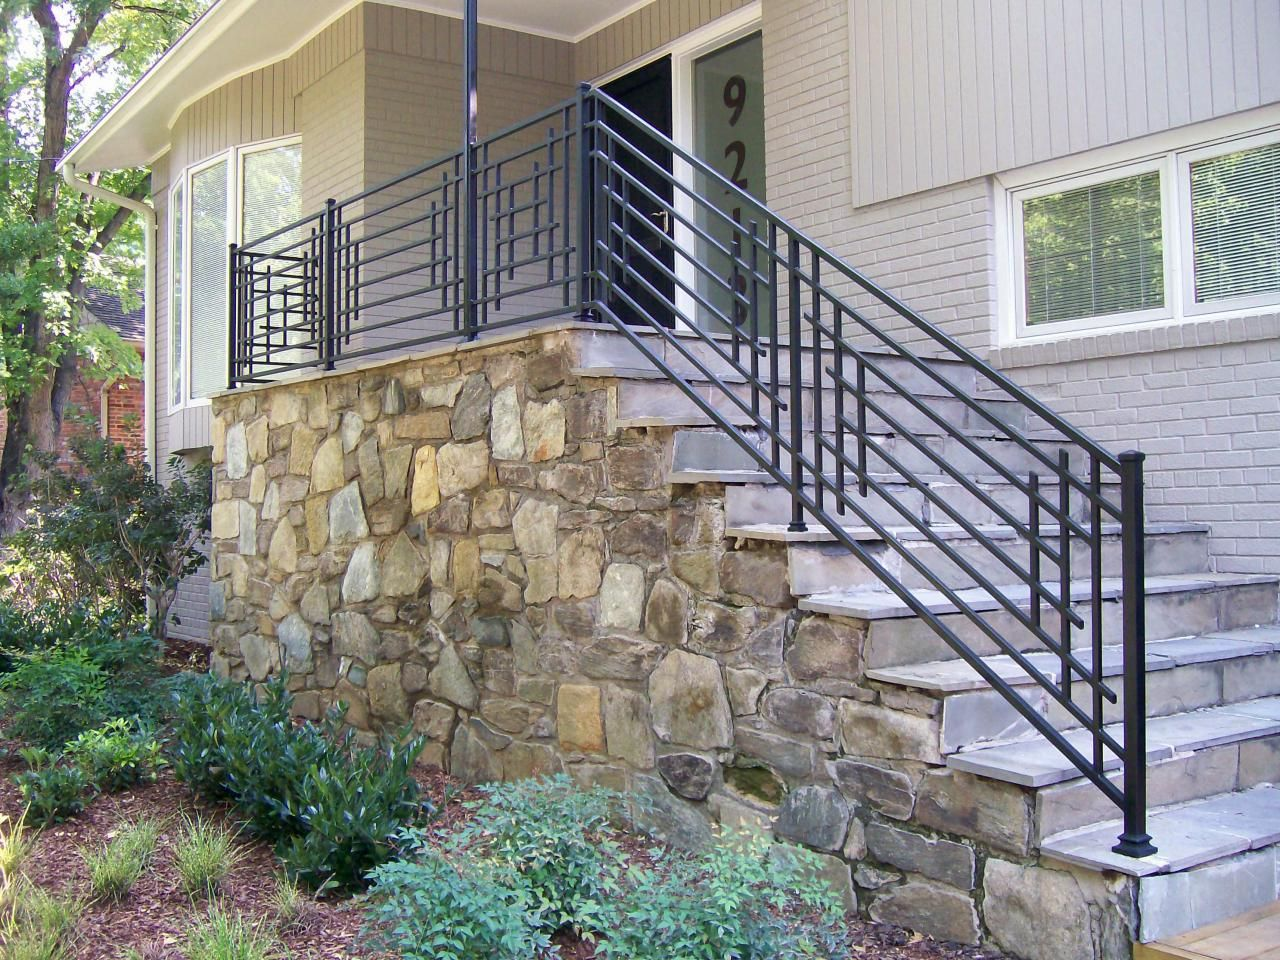 Wall Railings Designs metal stair railings staircase in staircase farmhouse with metal railing black railing Outdoor Stone Steps And Iron Railing Hgtv